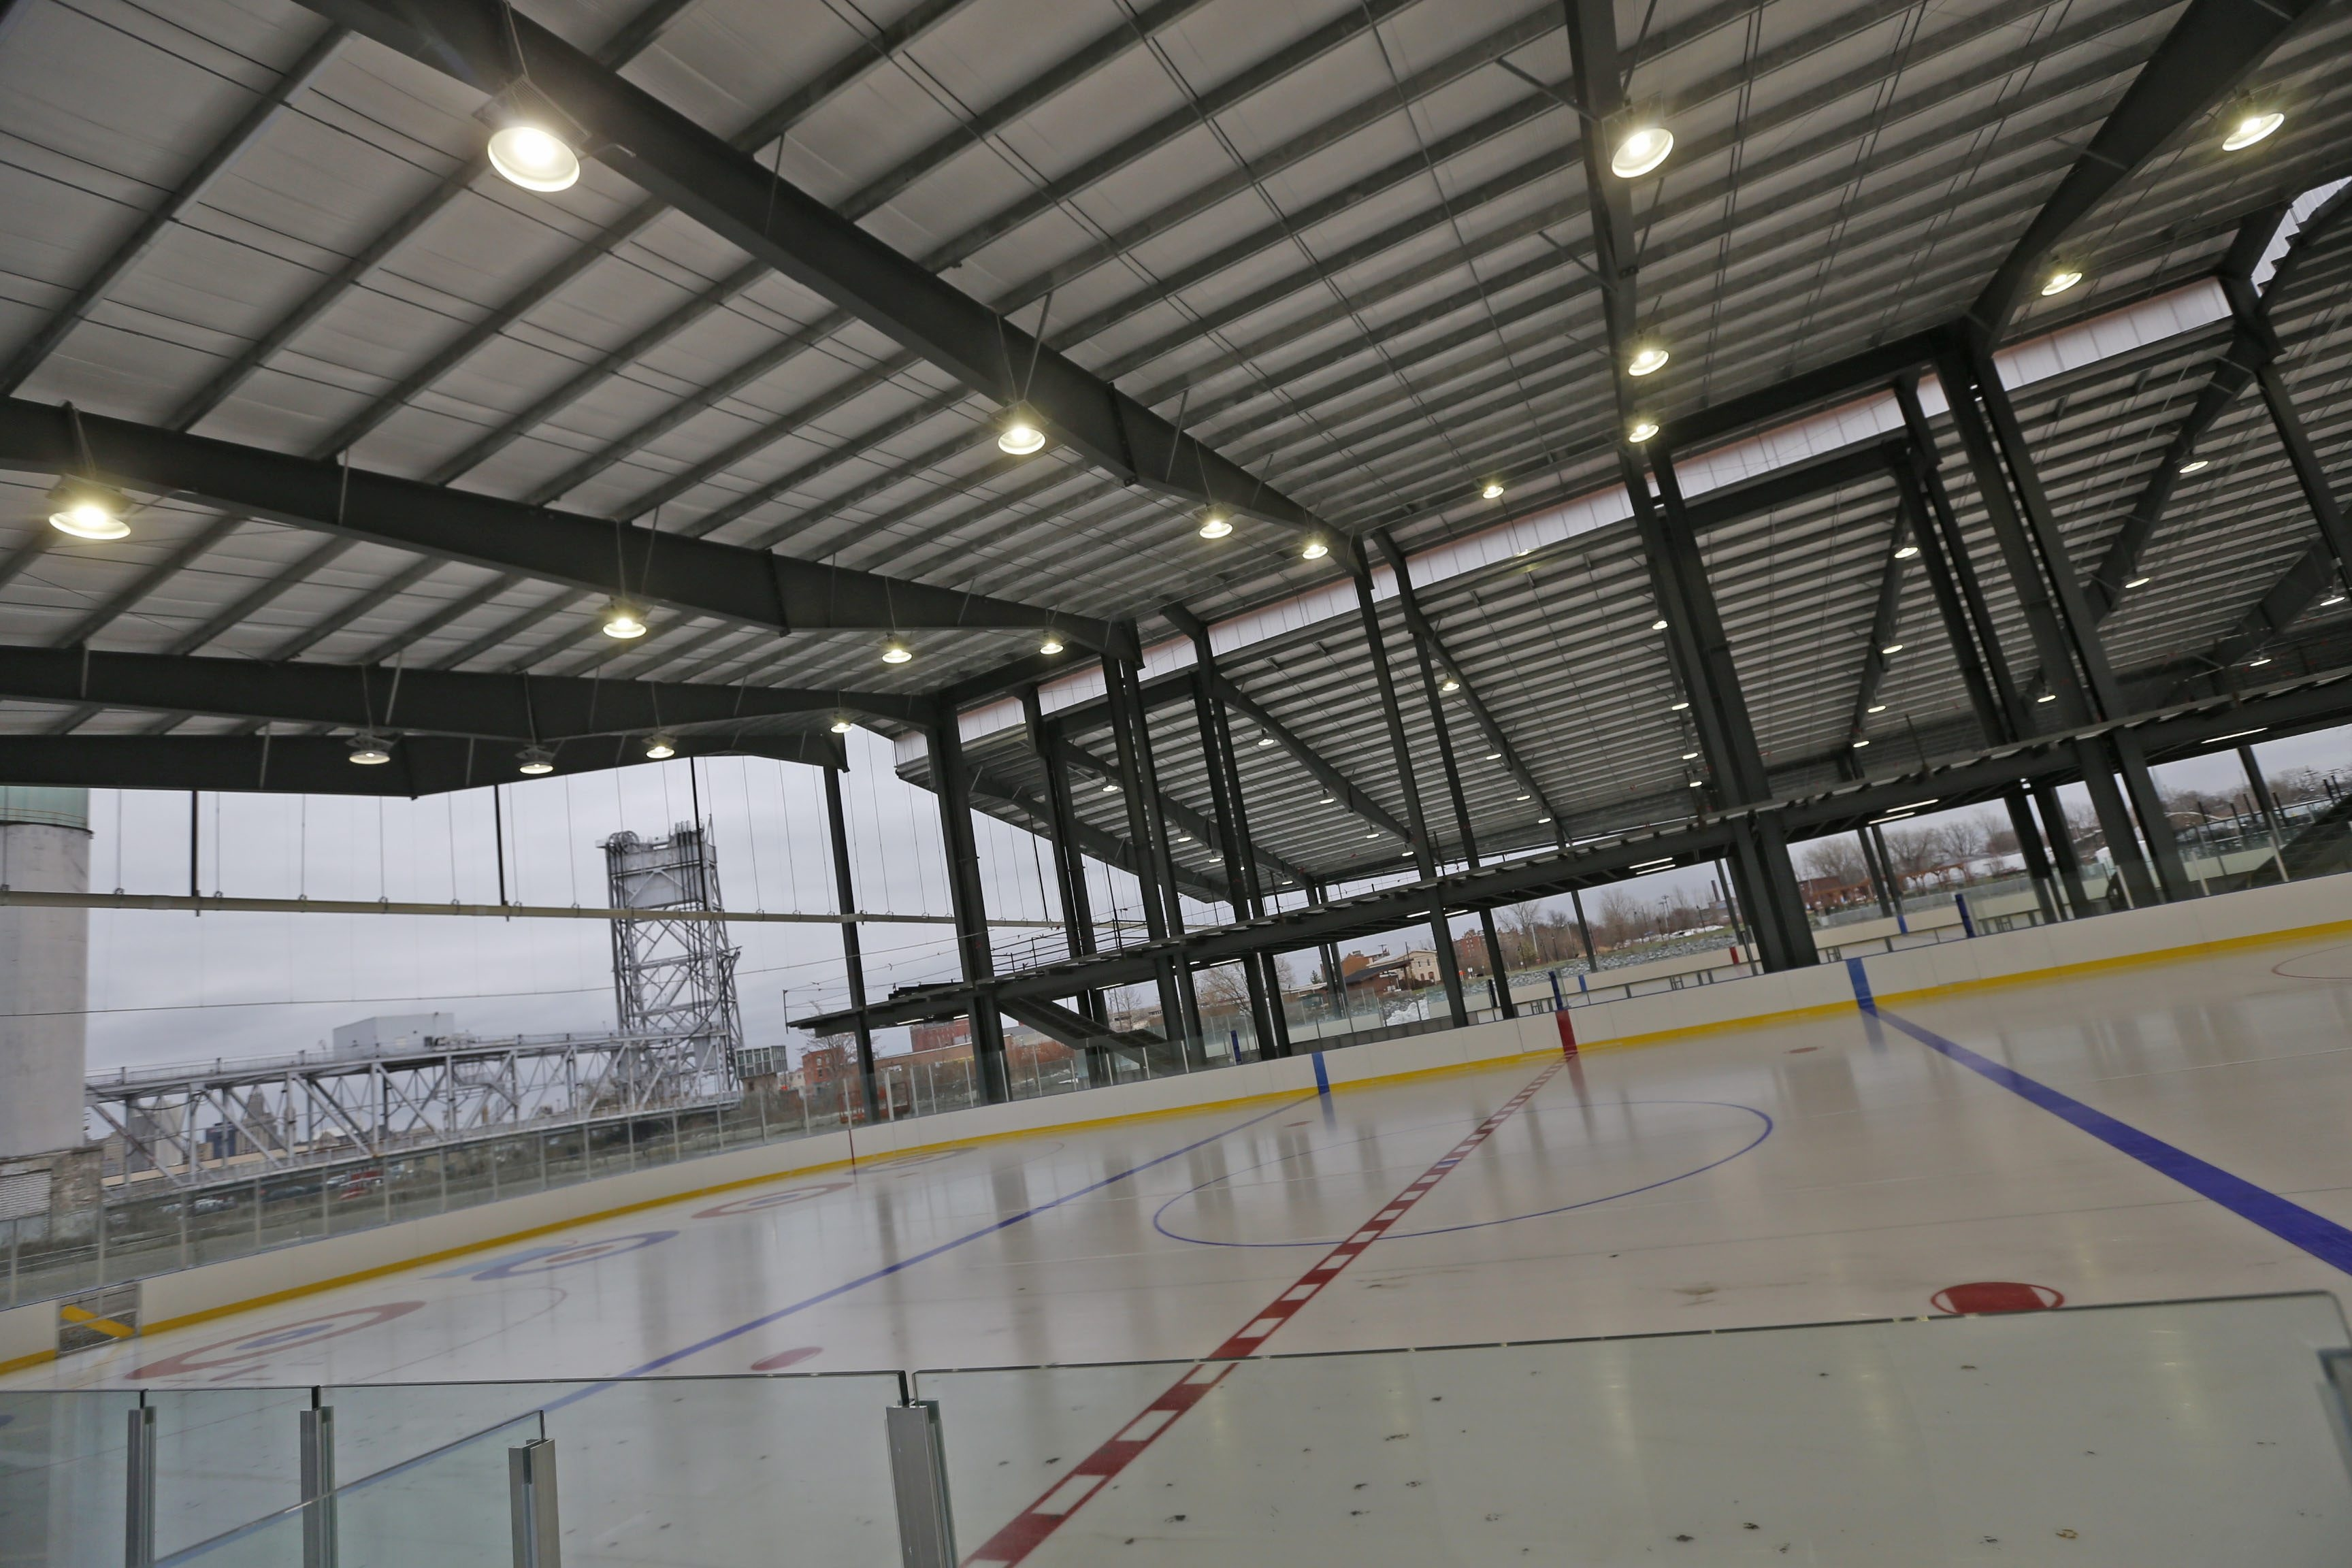 The new open-air ice rinks at the Buffalo RiverWorks complex on Ganson Street are ready to host hockey and curling.